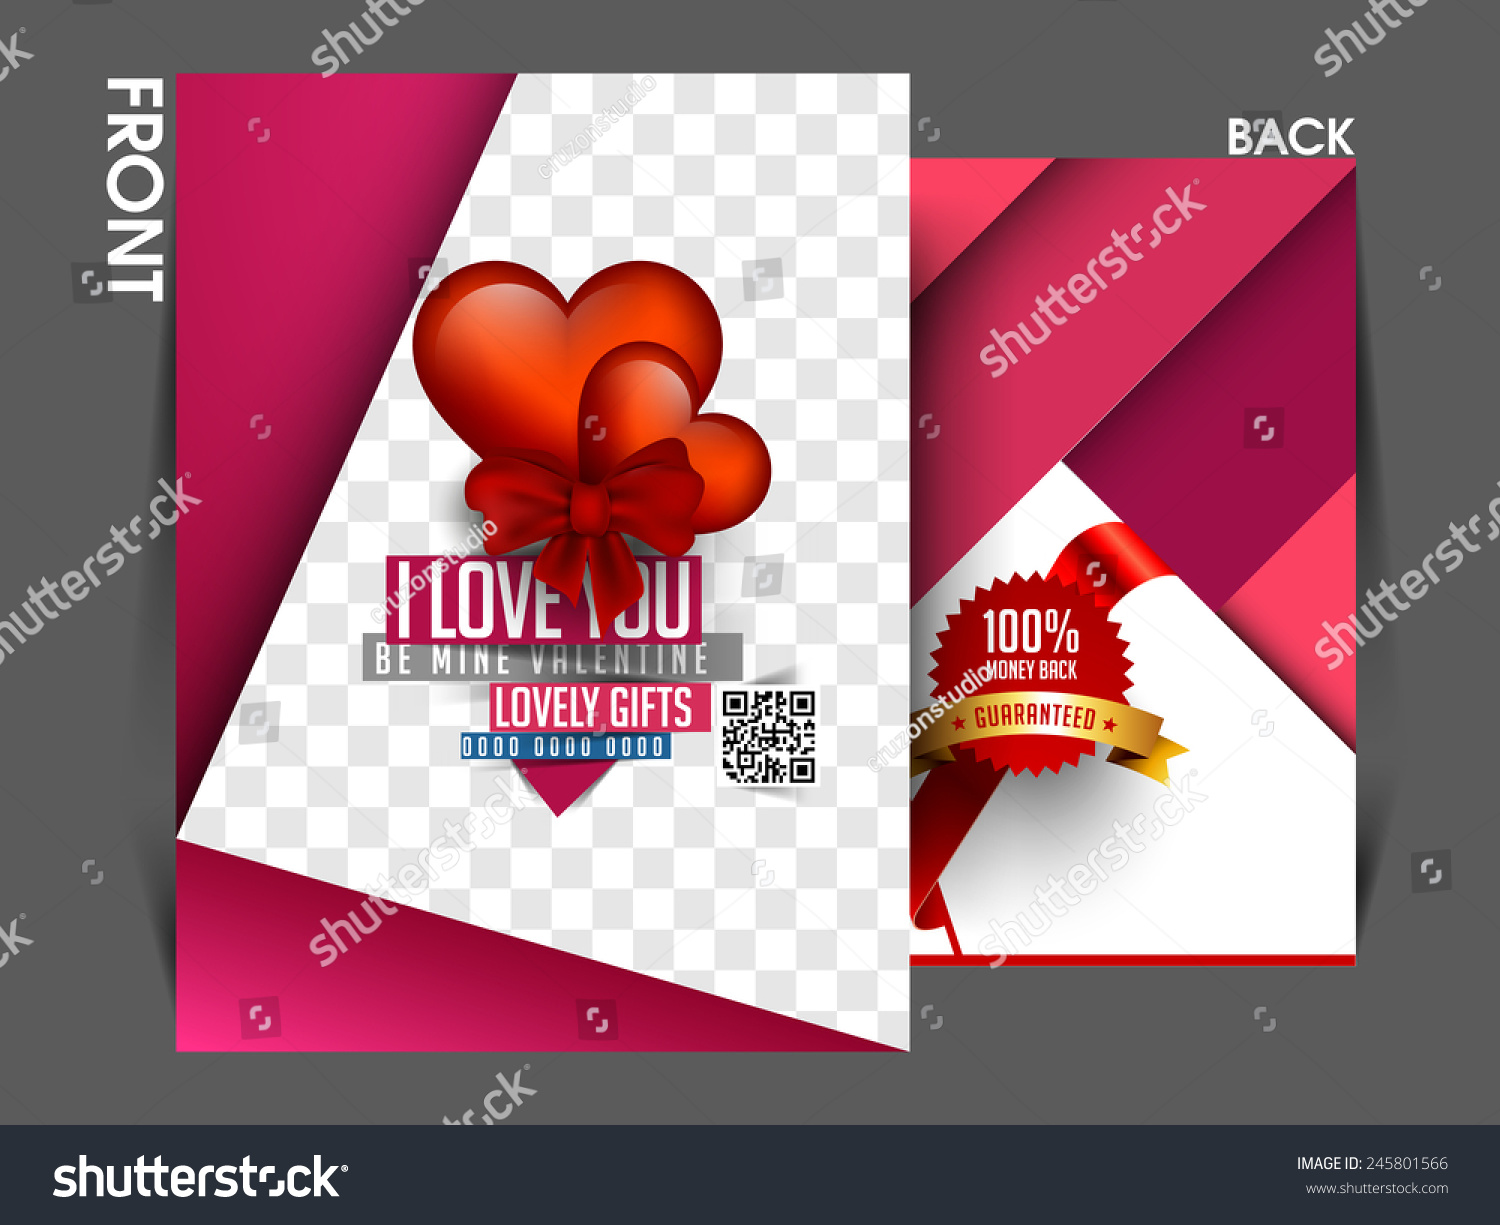 Valentines Day Offer Flyer Template Eps 10 Stock Vector Royalty